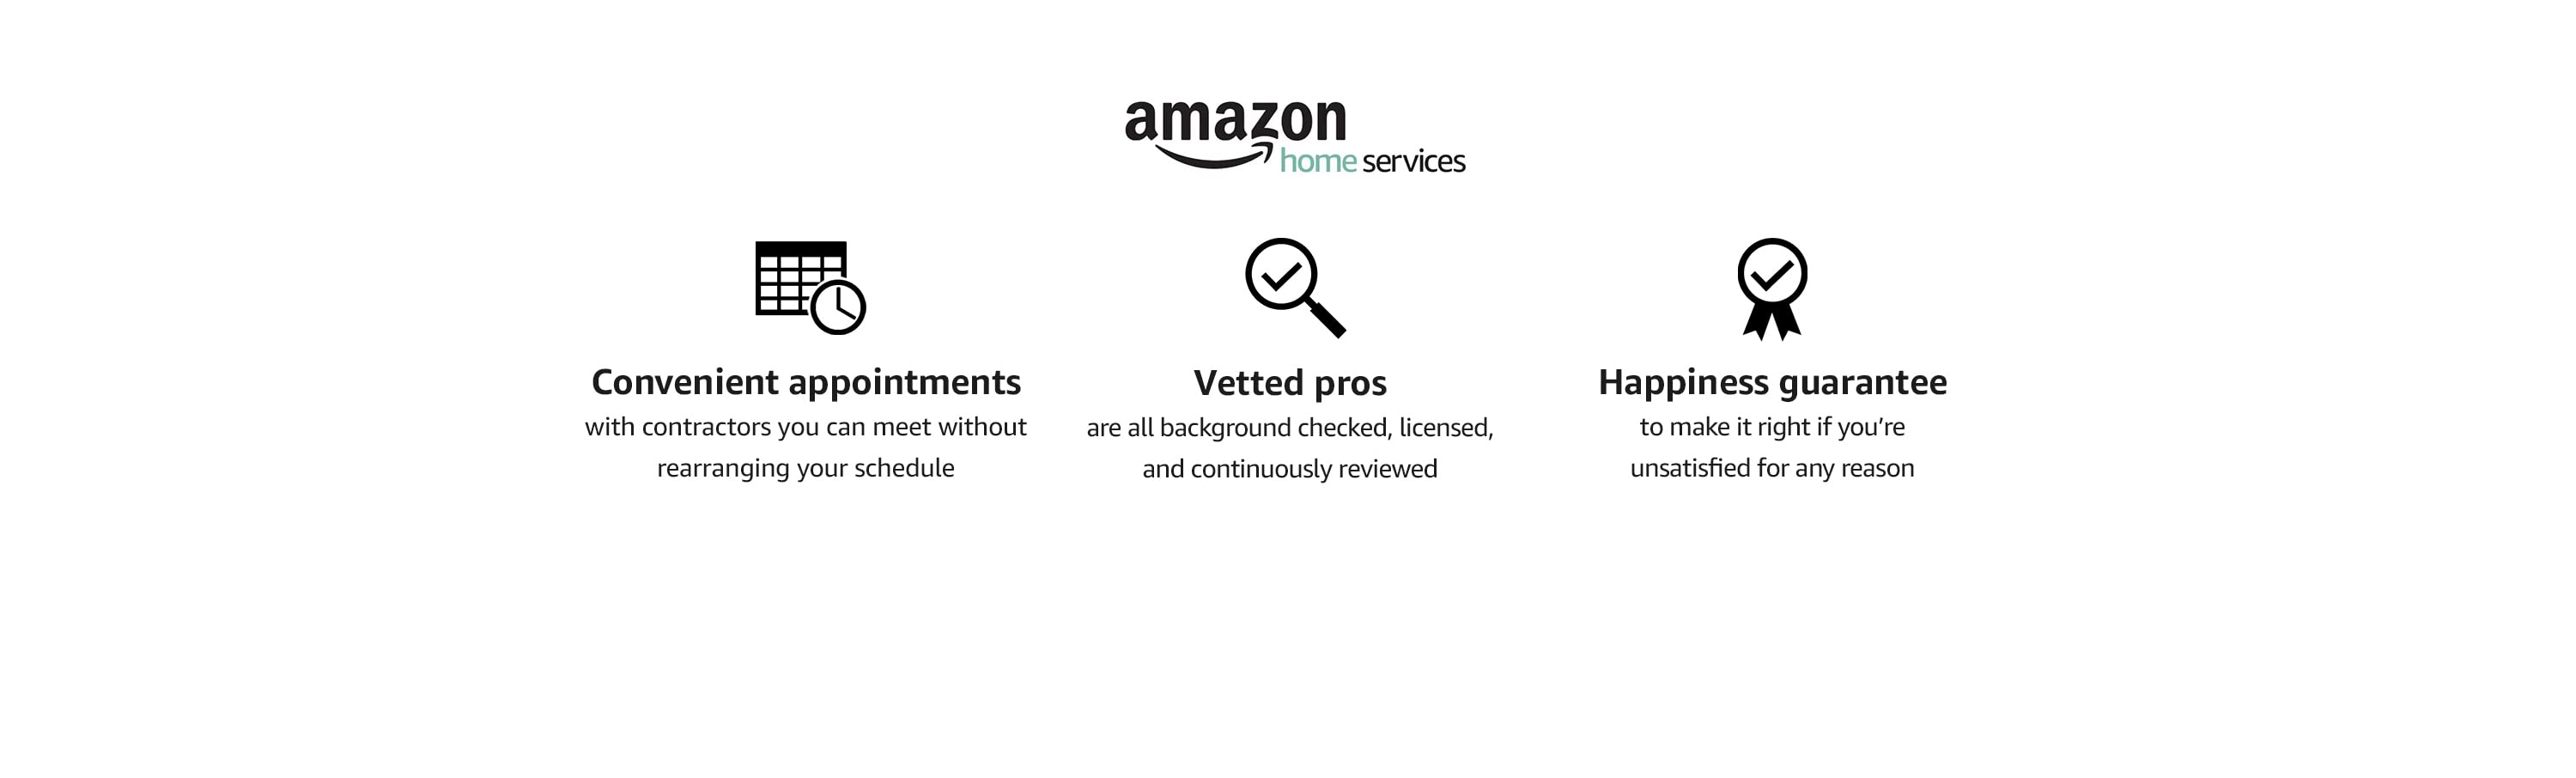 Why choose Amazon Home Services  Convenient appointments with contractors you can meet without rearranging your schedule Vetted pros are all background checked, licensed, and continuously reviewed Happiness guarantee to make it right if you're unsatisfied for any reason